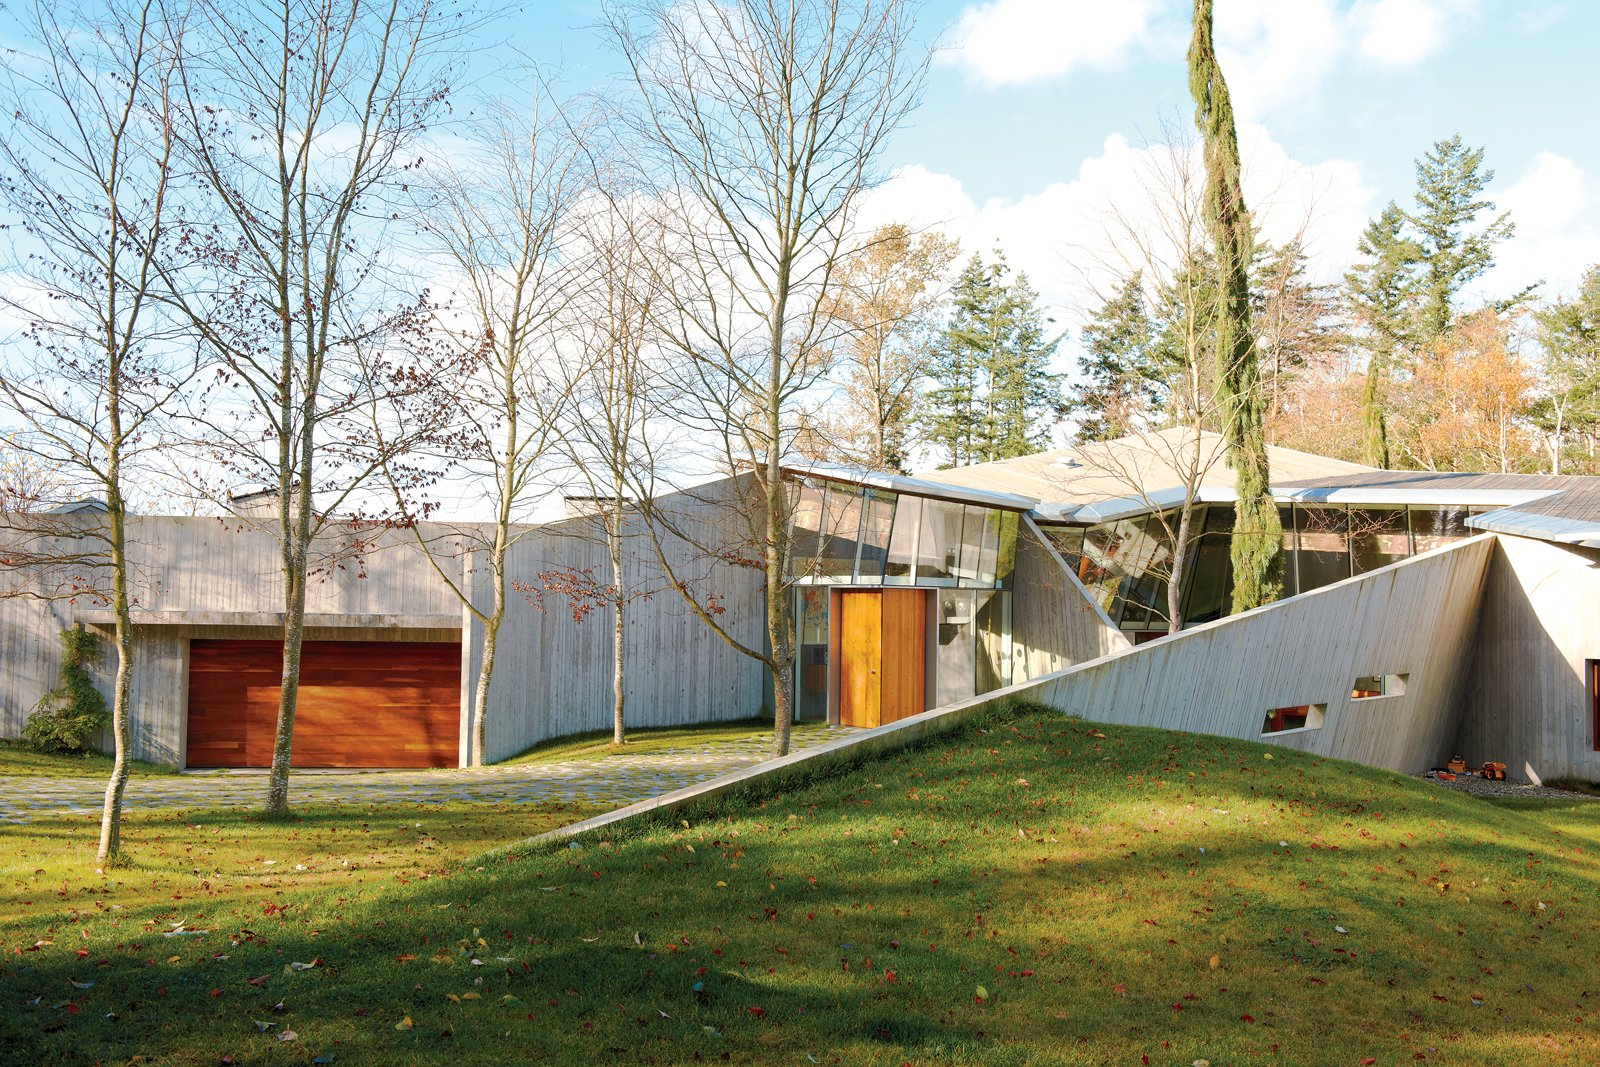 Articles about modern box home rural wisconsin on Dwell.com